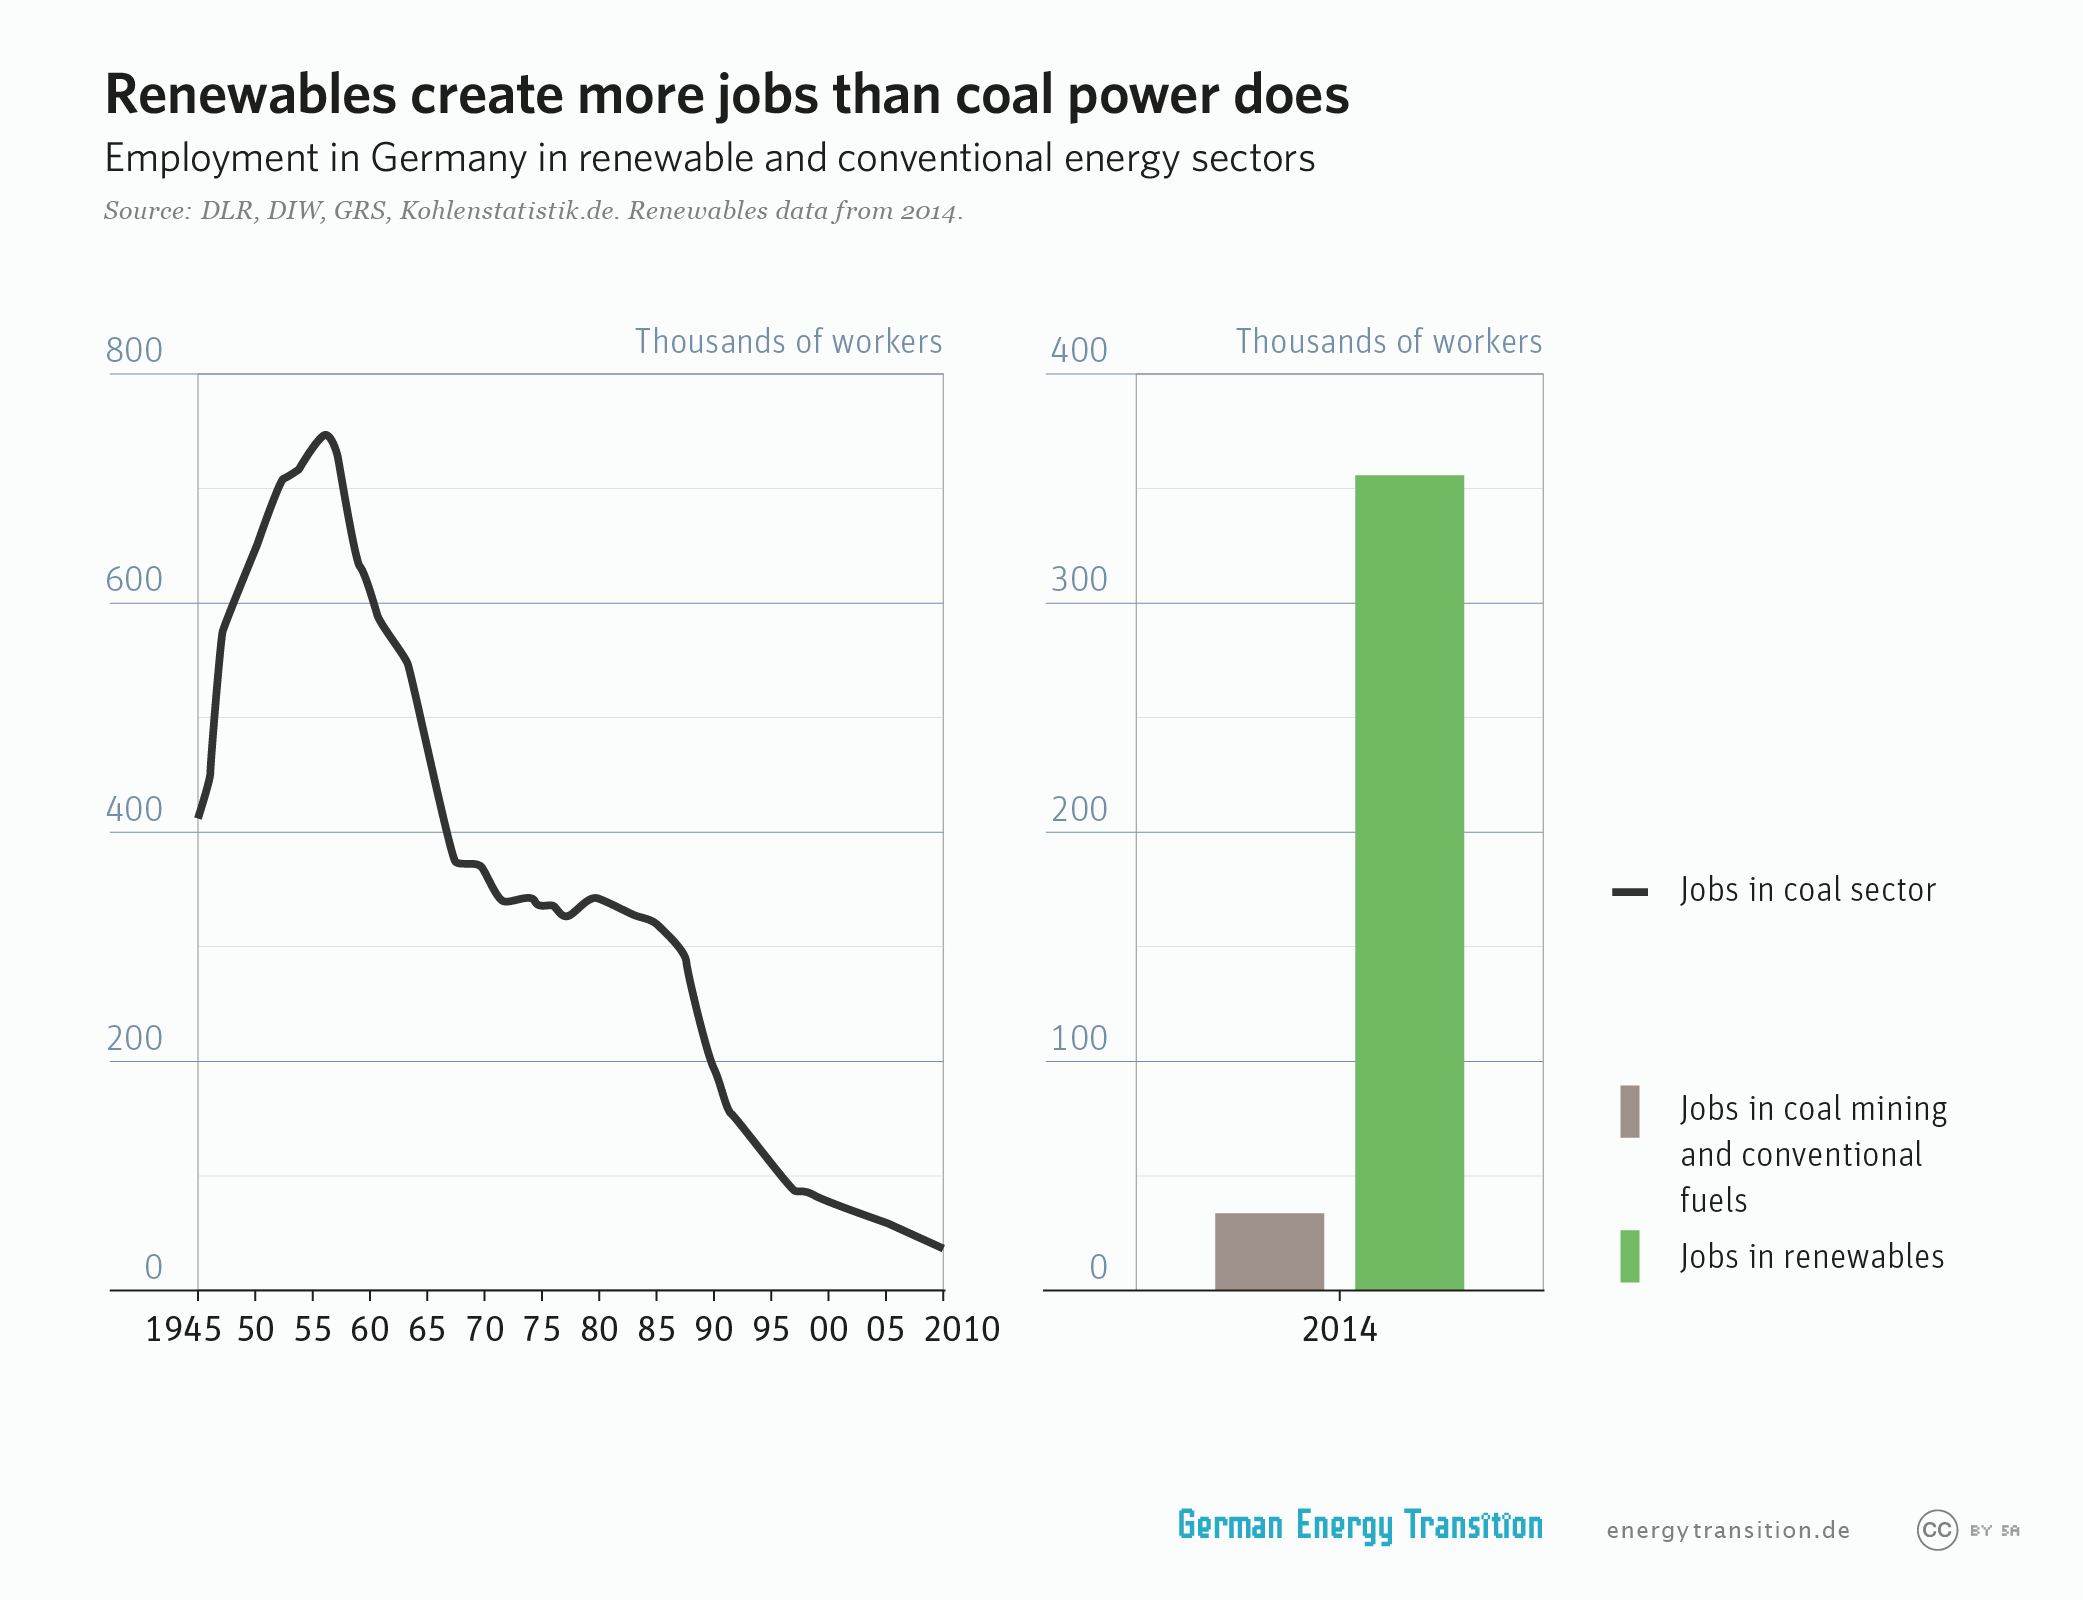 Renewables create more jobs than coal sector in Germany